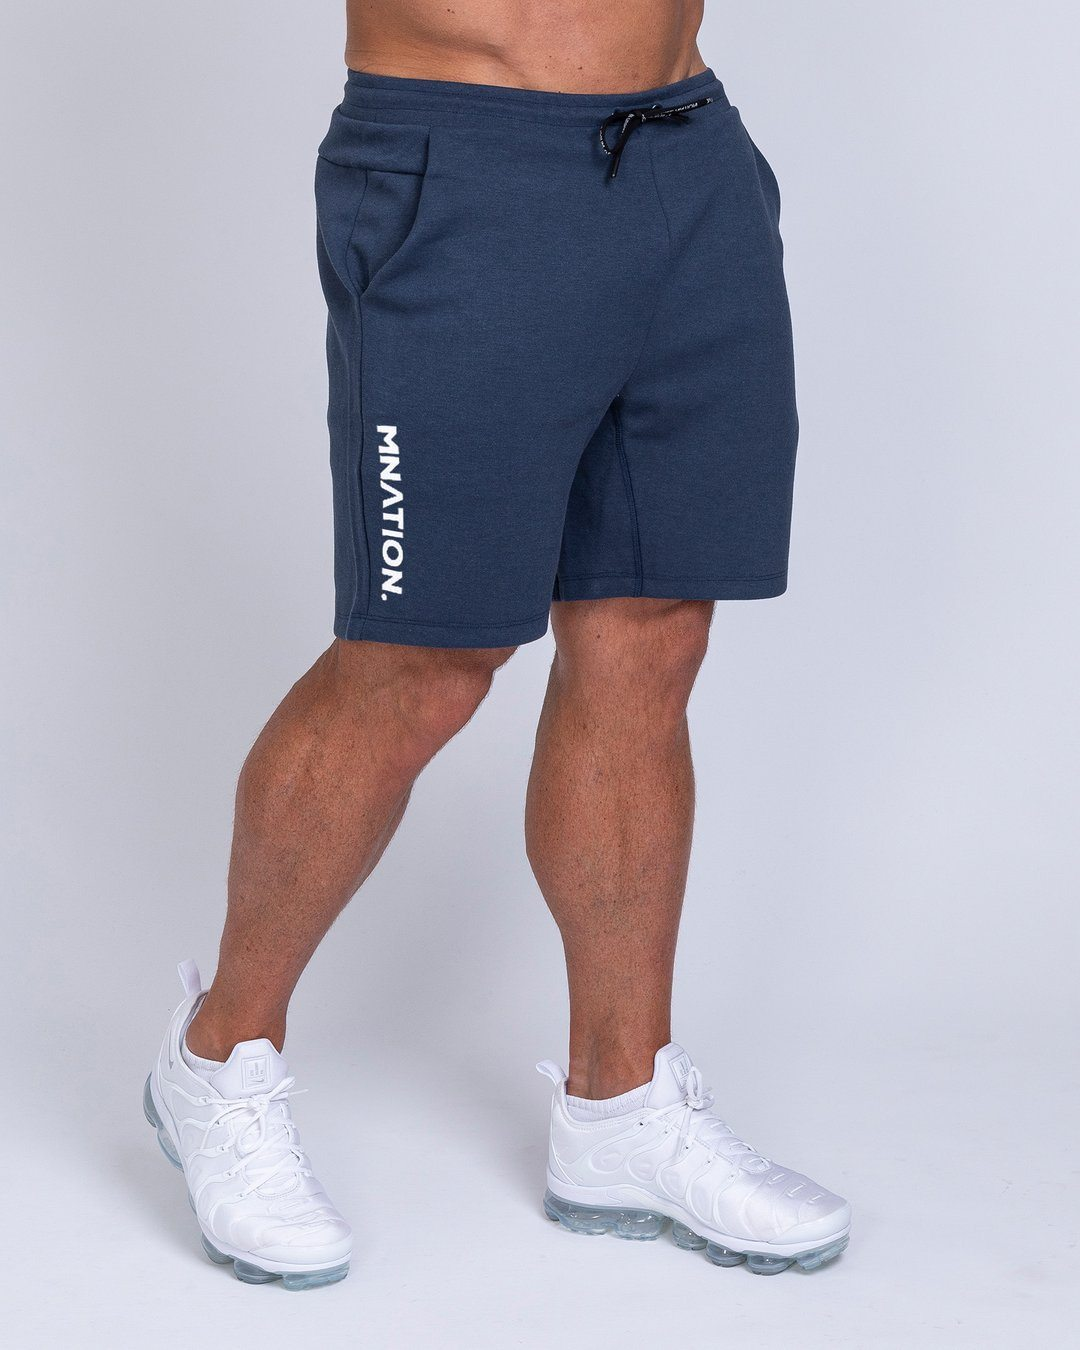 Muscle Nation Casual Fit Shorts - Navy